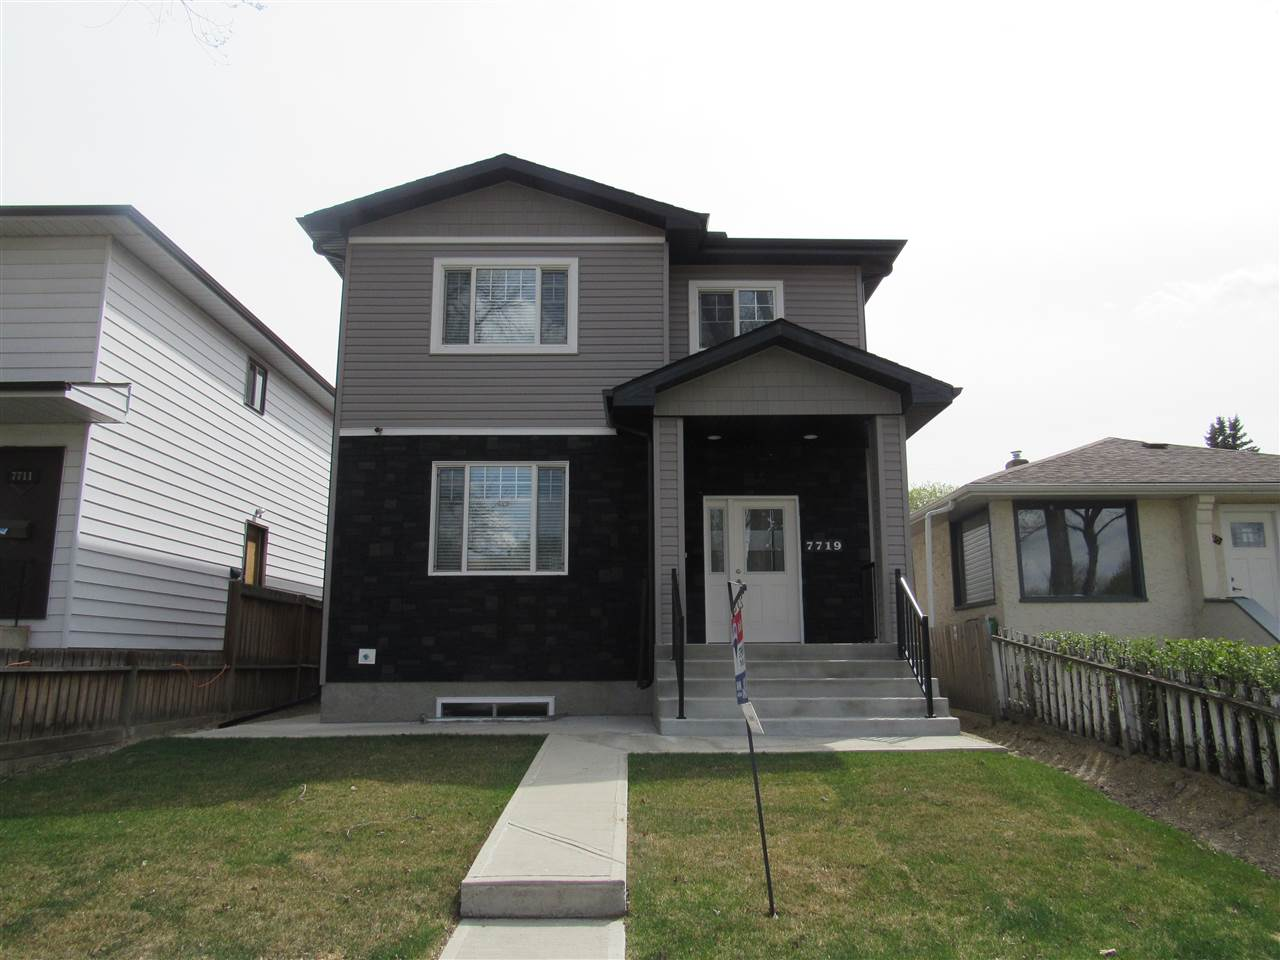 Main Photo: 7719 80 Avenue in Edmonton: Zone 17 House for sale : MLS(r) # E4068786